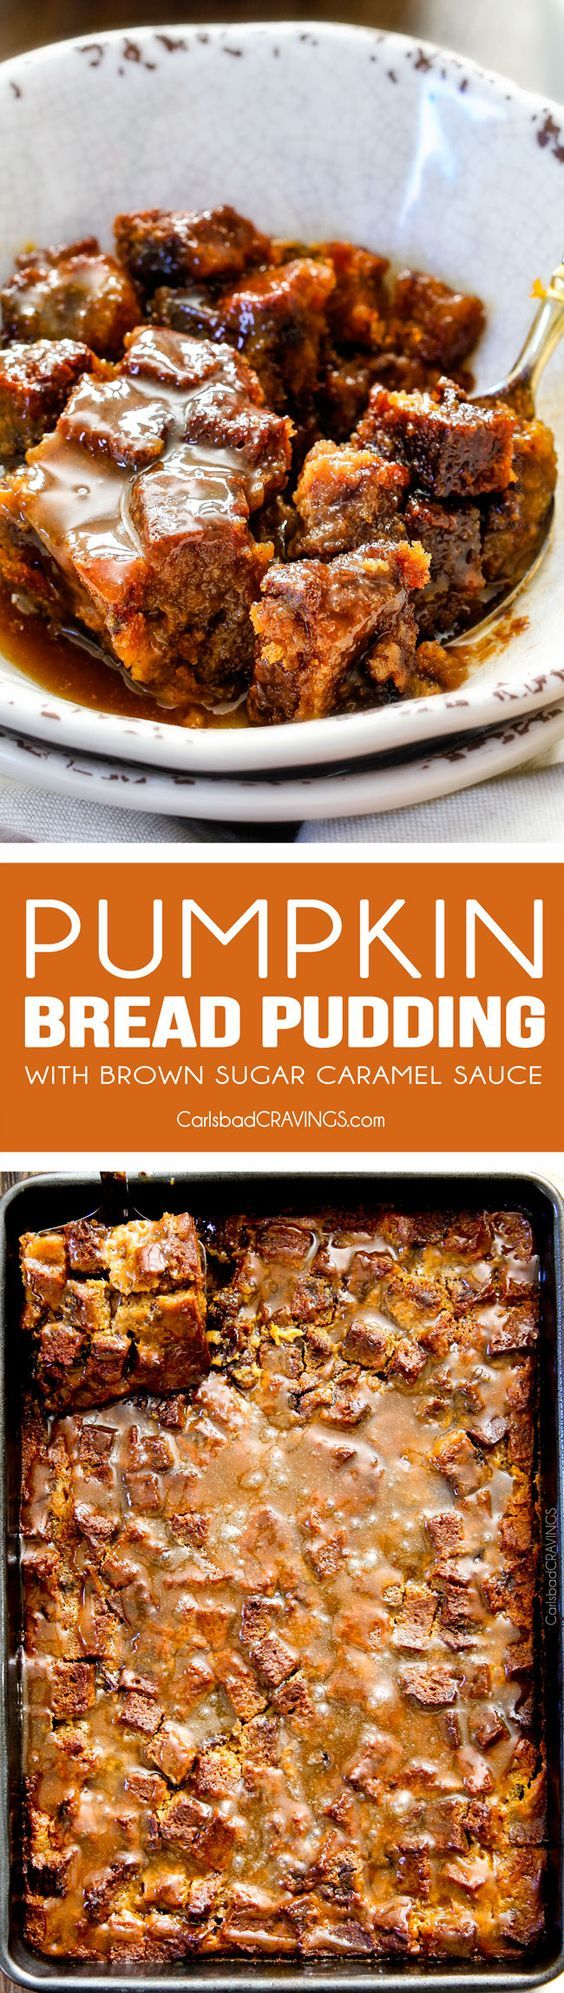 My family is obsessed with this Pumpkin Bread Pudding! Its moist, mega flavorful and the Brown Sugar Caramel Sauce is out of this world! #thanksgiving #dessert #fall via @carlsbadcraving